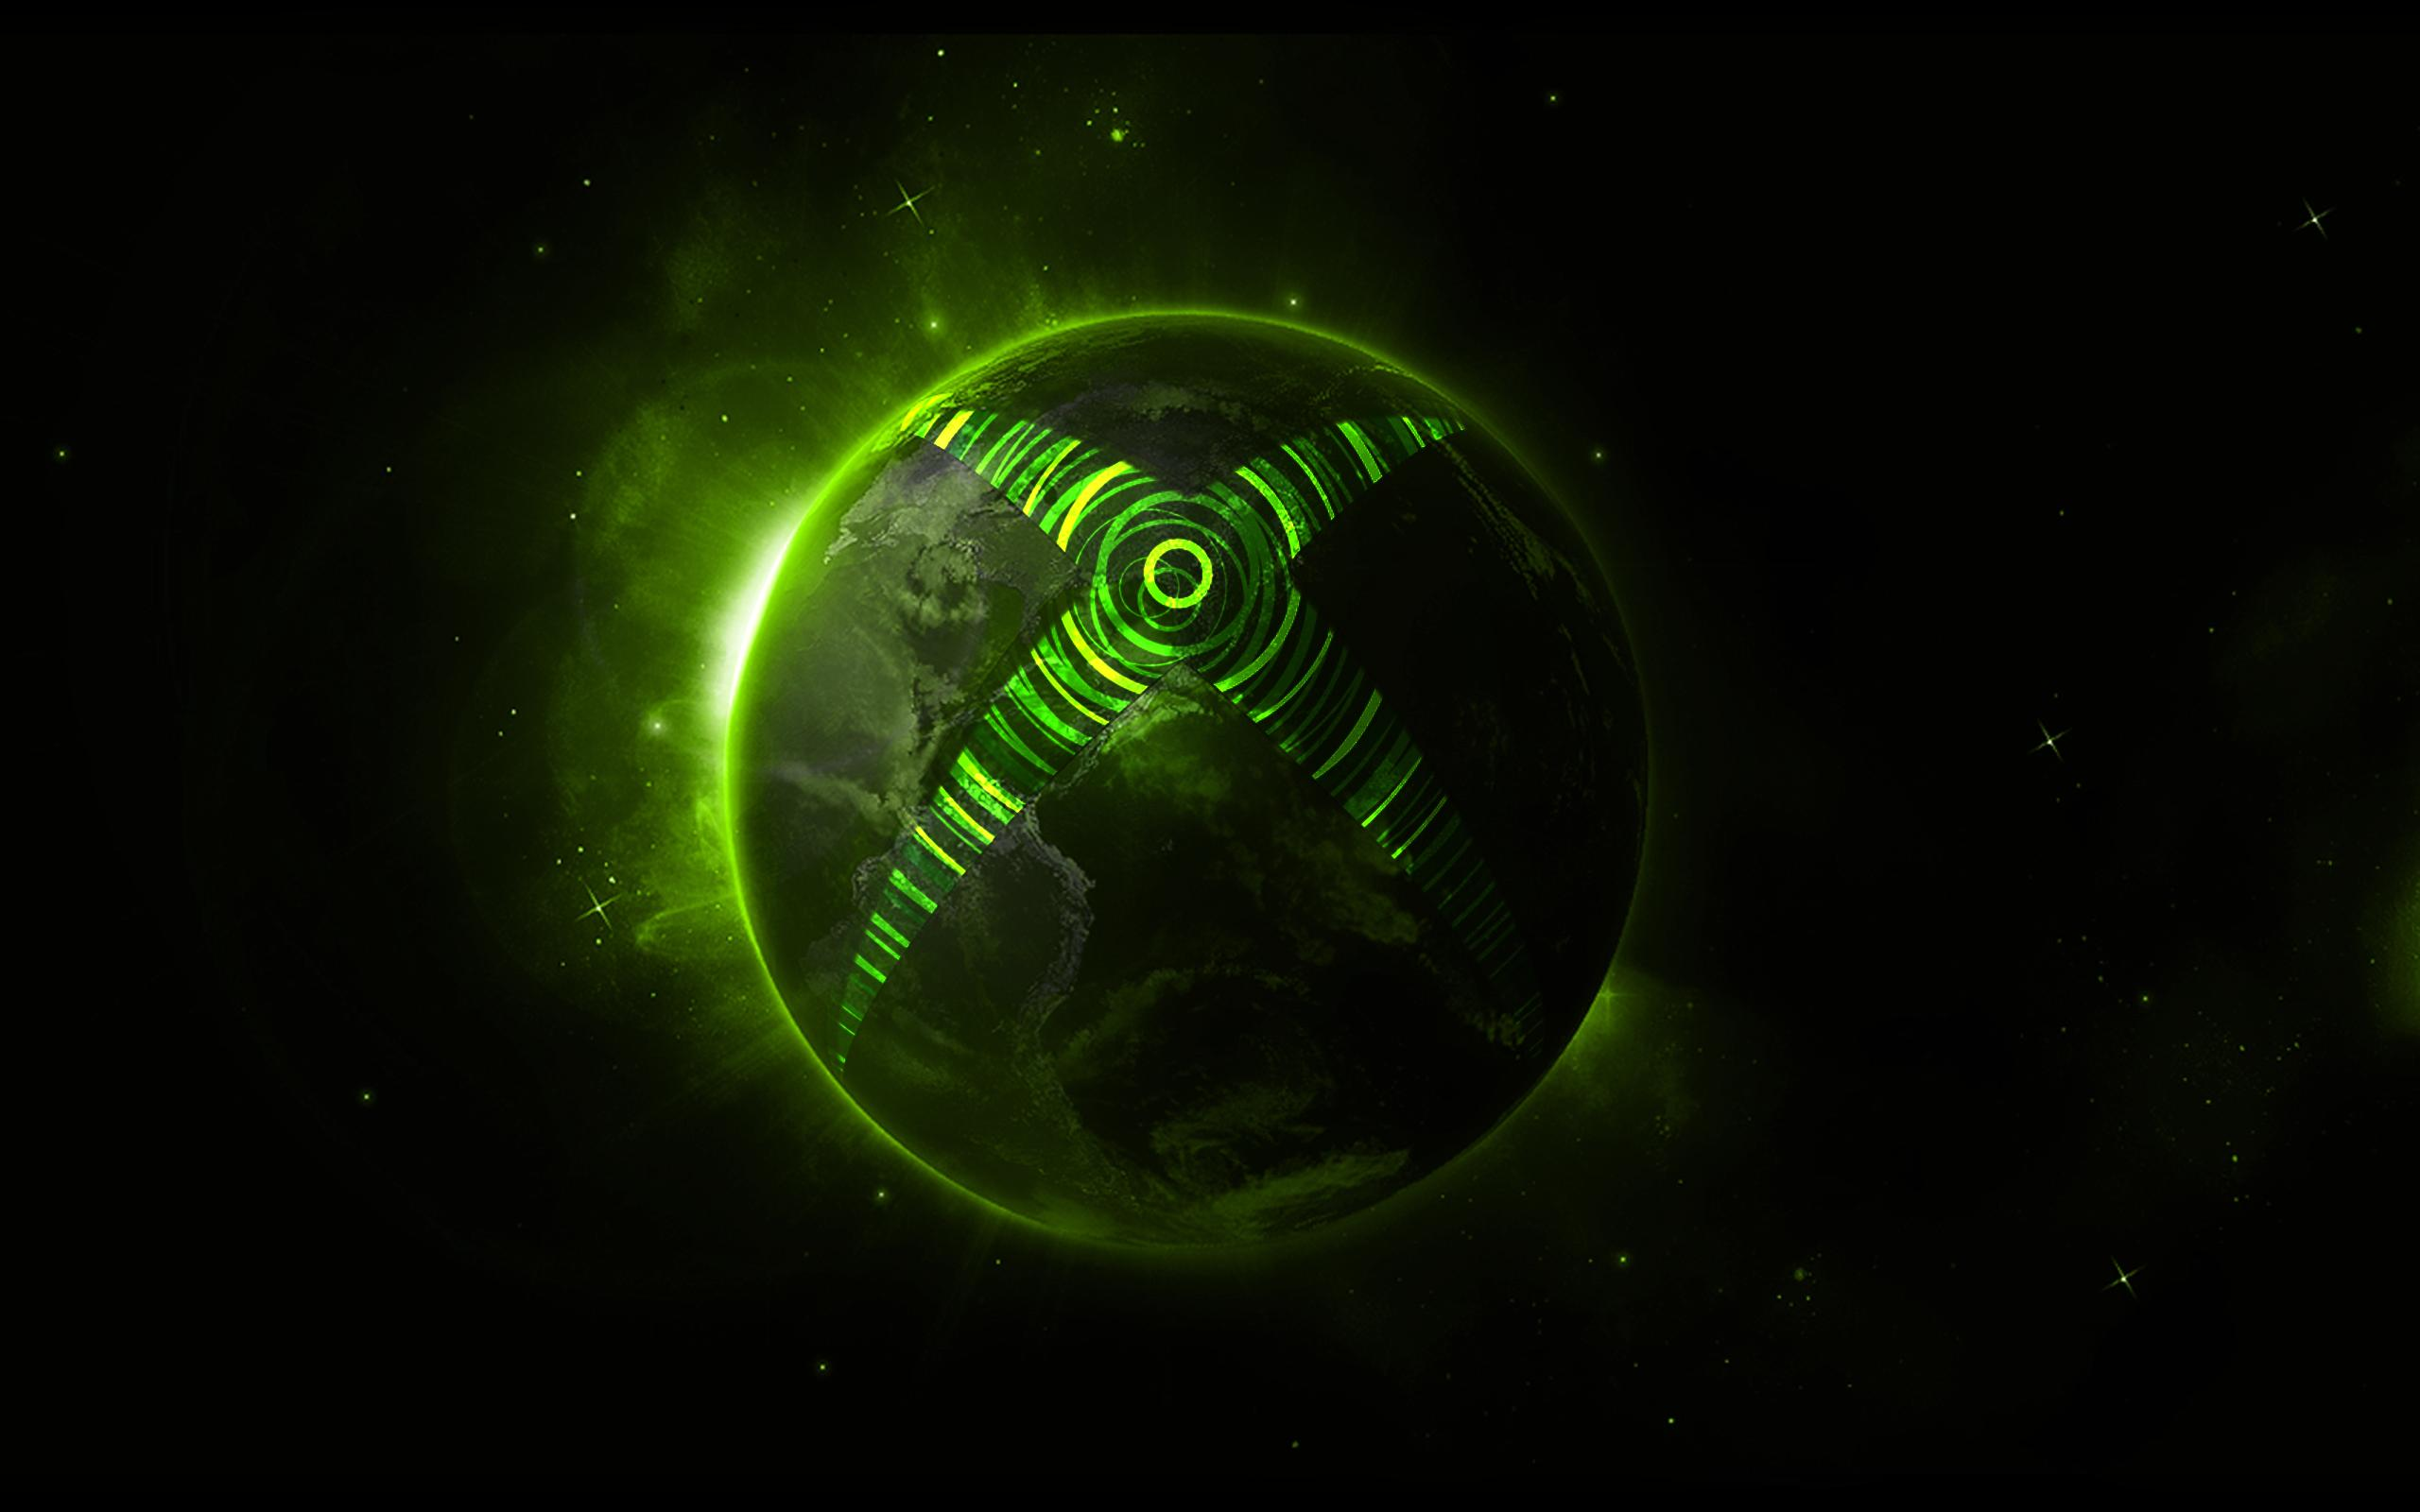 Xbox Wallpaper Cool Xbox Backgrounds 31 Superb Xbox Wallpapers 2560x1600